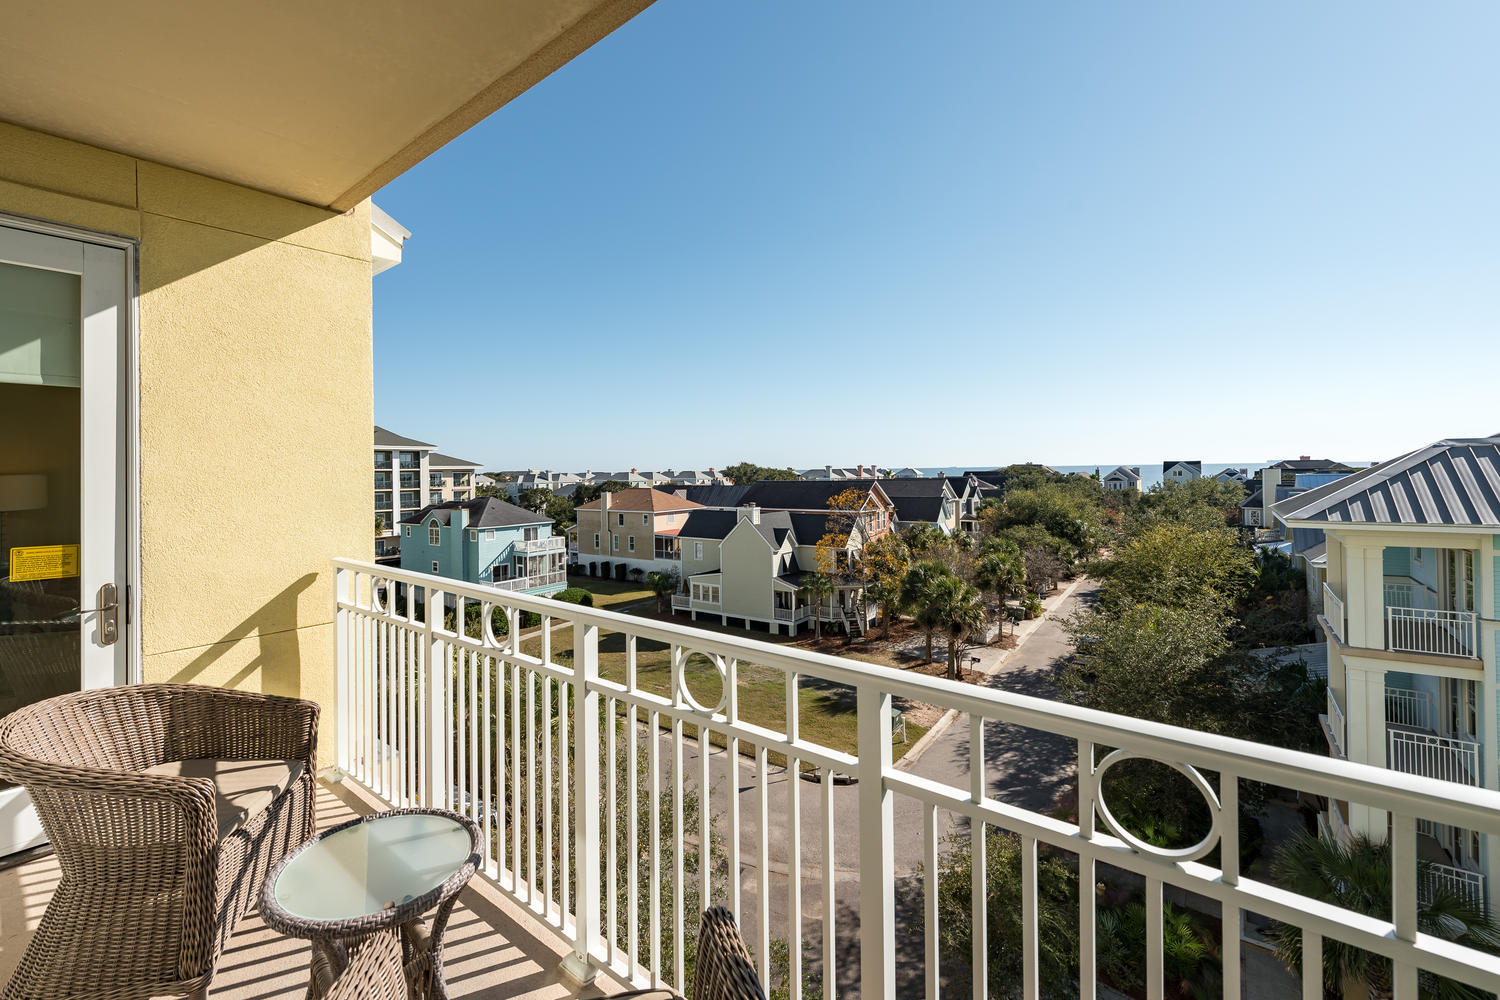 Wild Dunes Homes For Sale - 405/407 B Village At Wild Dunes, Isle of Palms, SC - 5